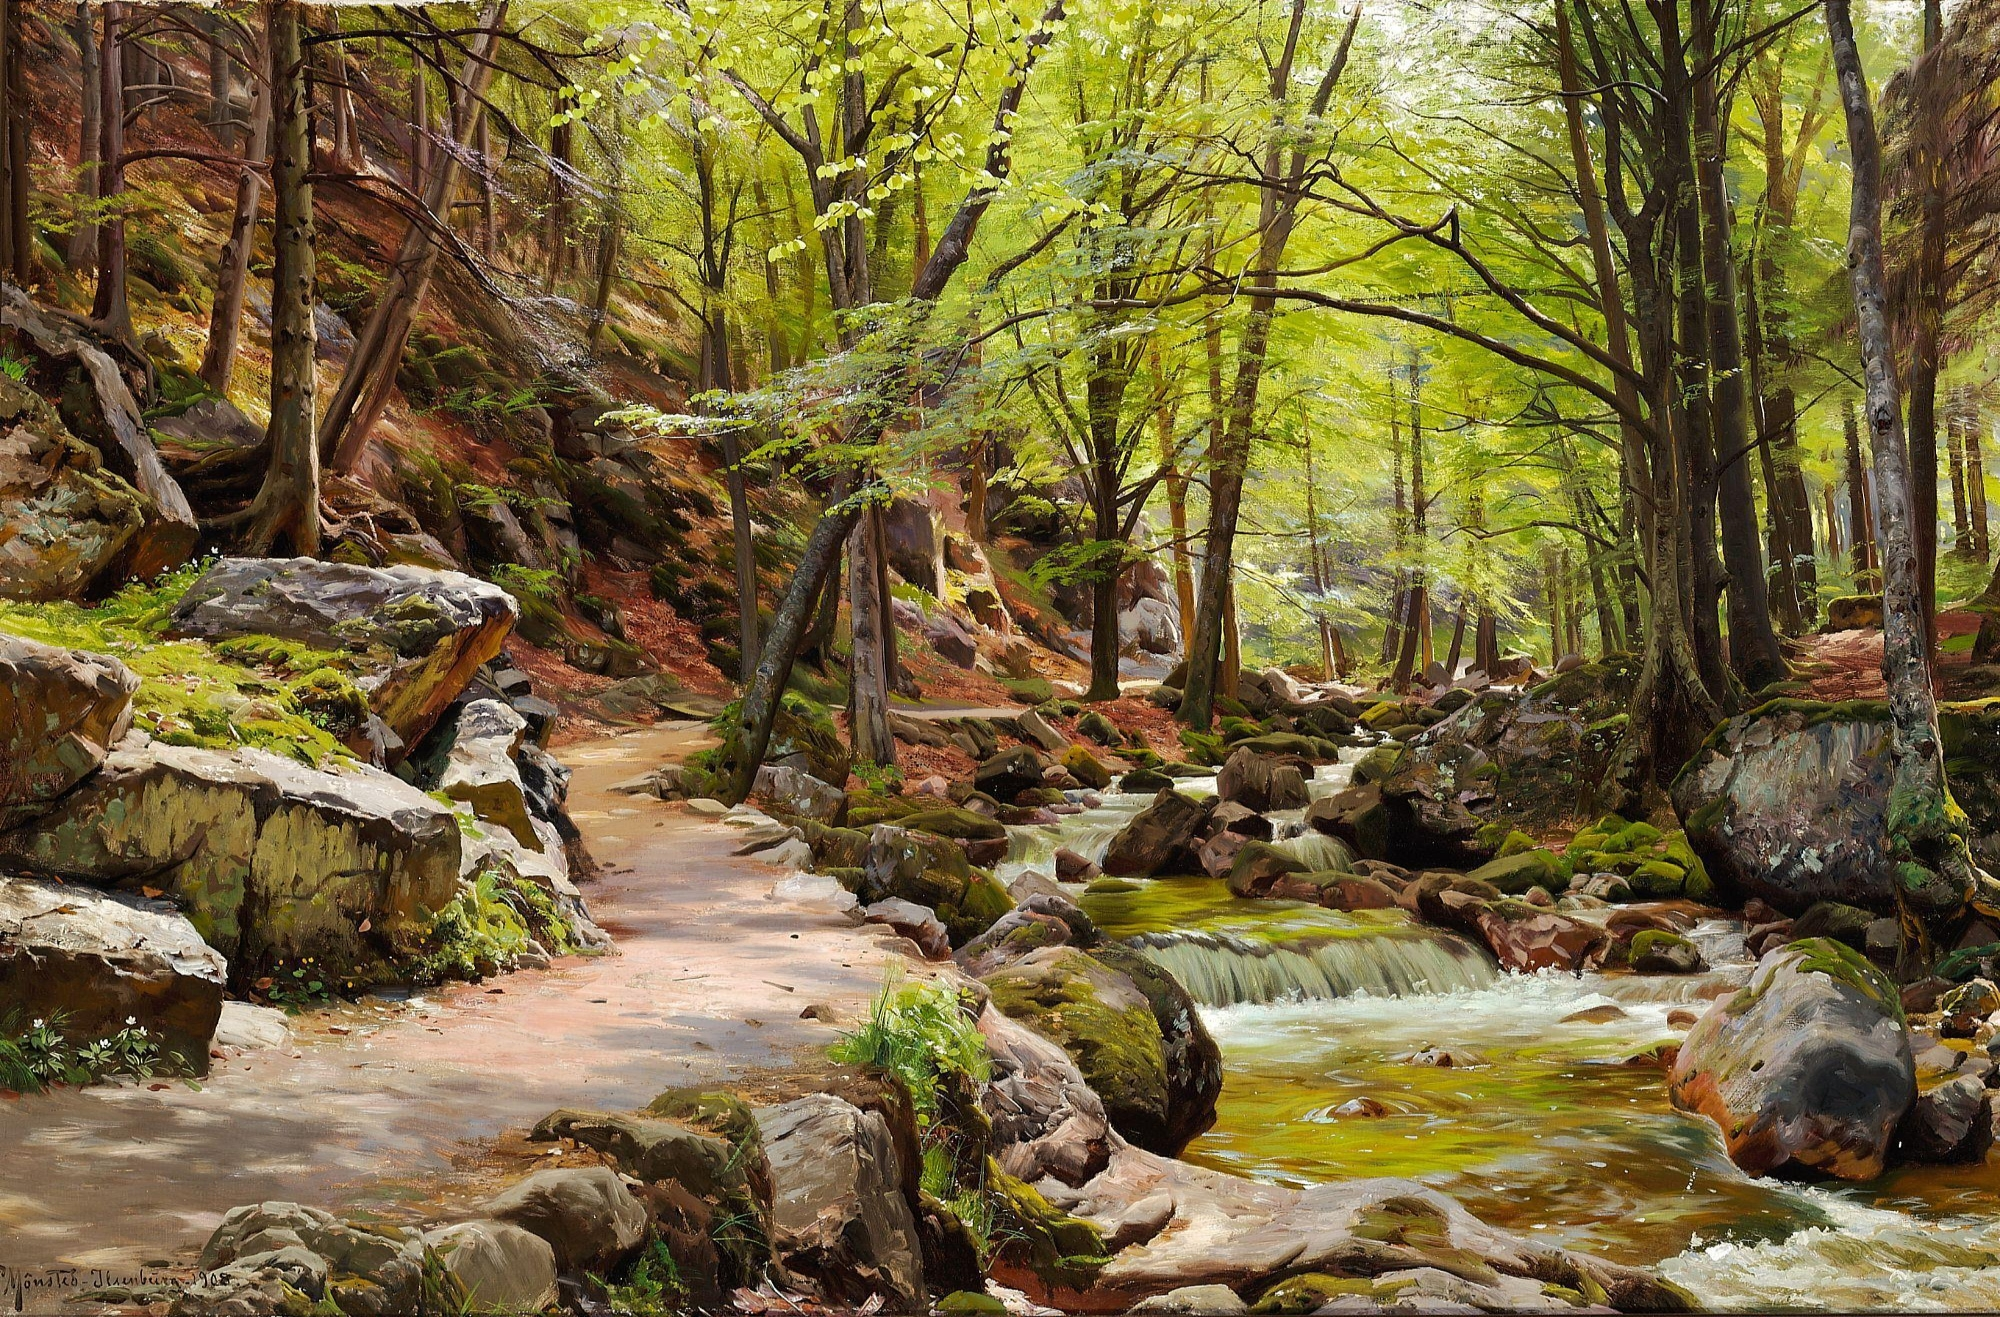 Inspiration - Pedar Mork Monsted